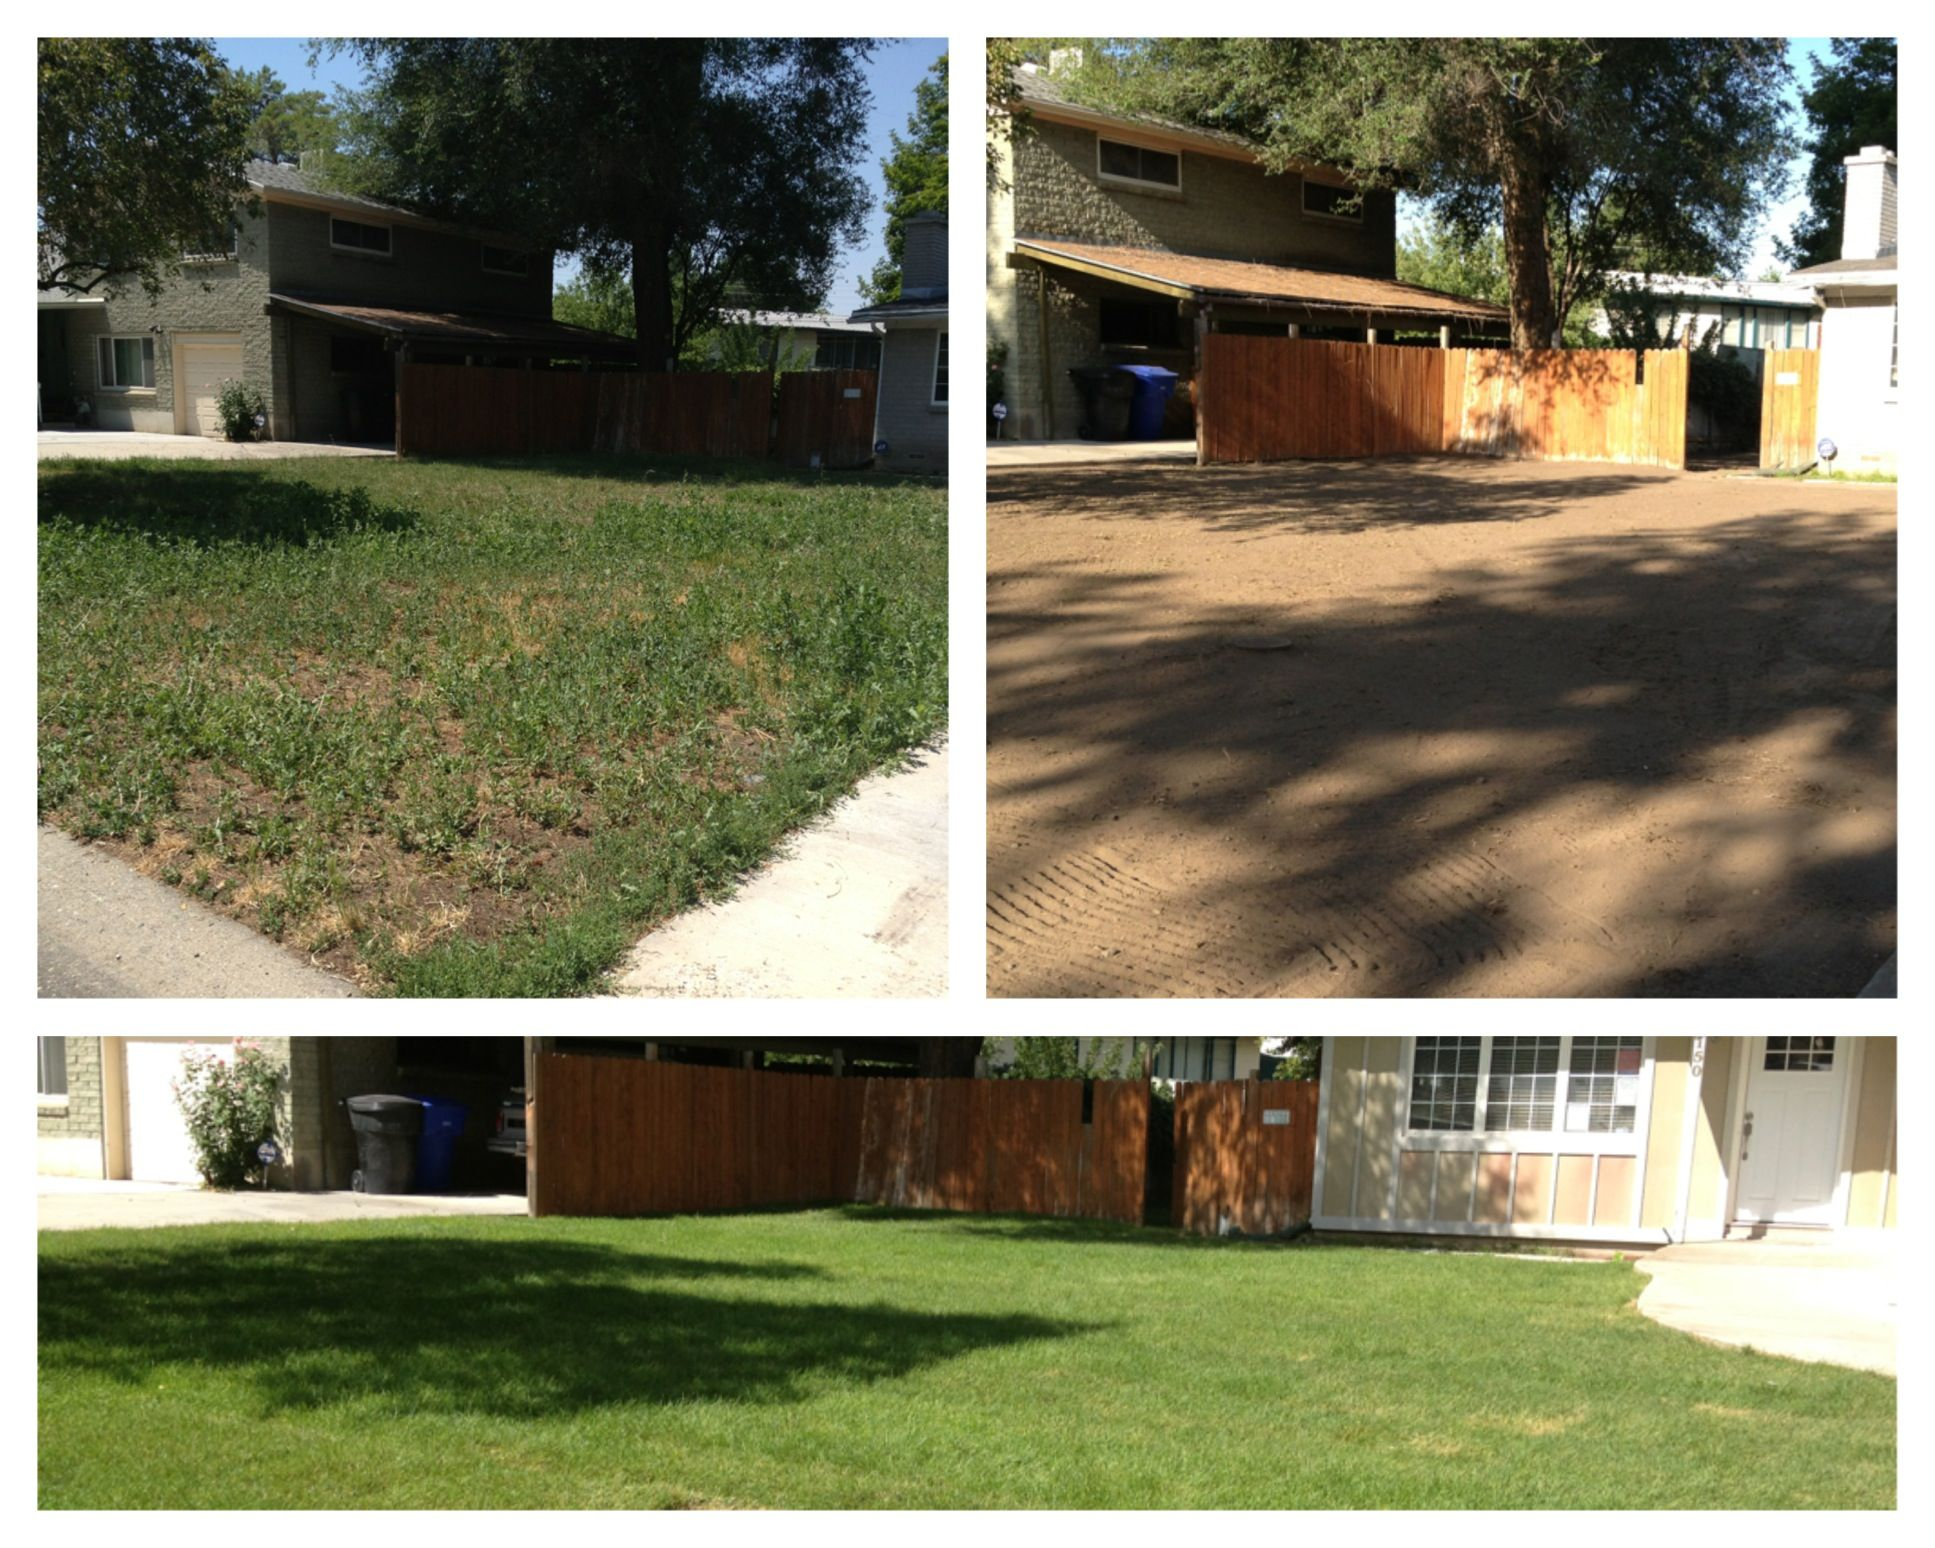 In Holladay Utah we took this home and completely remade the yard. 7000 sq ft of debris was removed and graded to lay new sod.